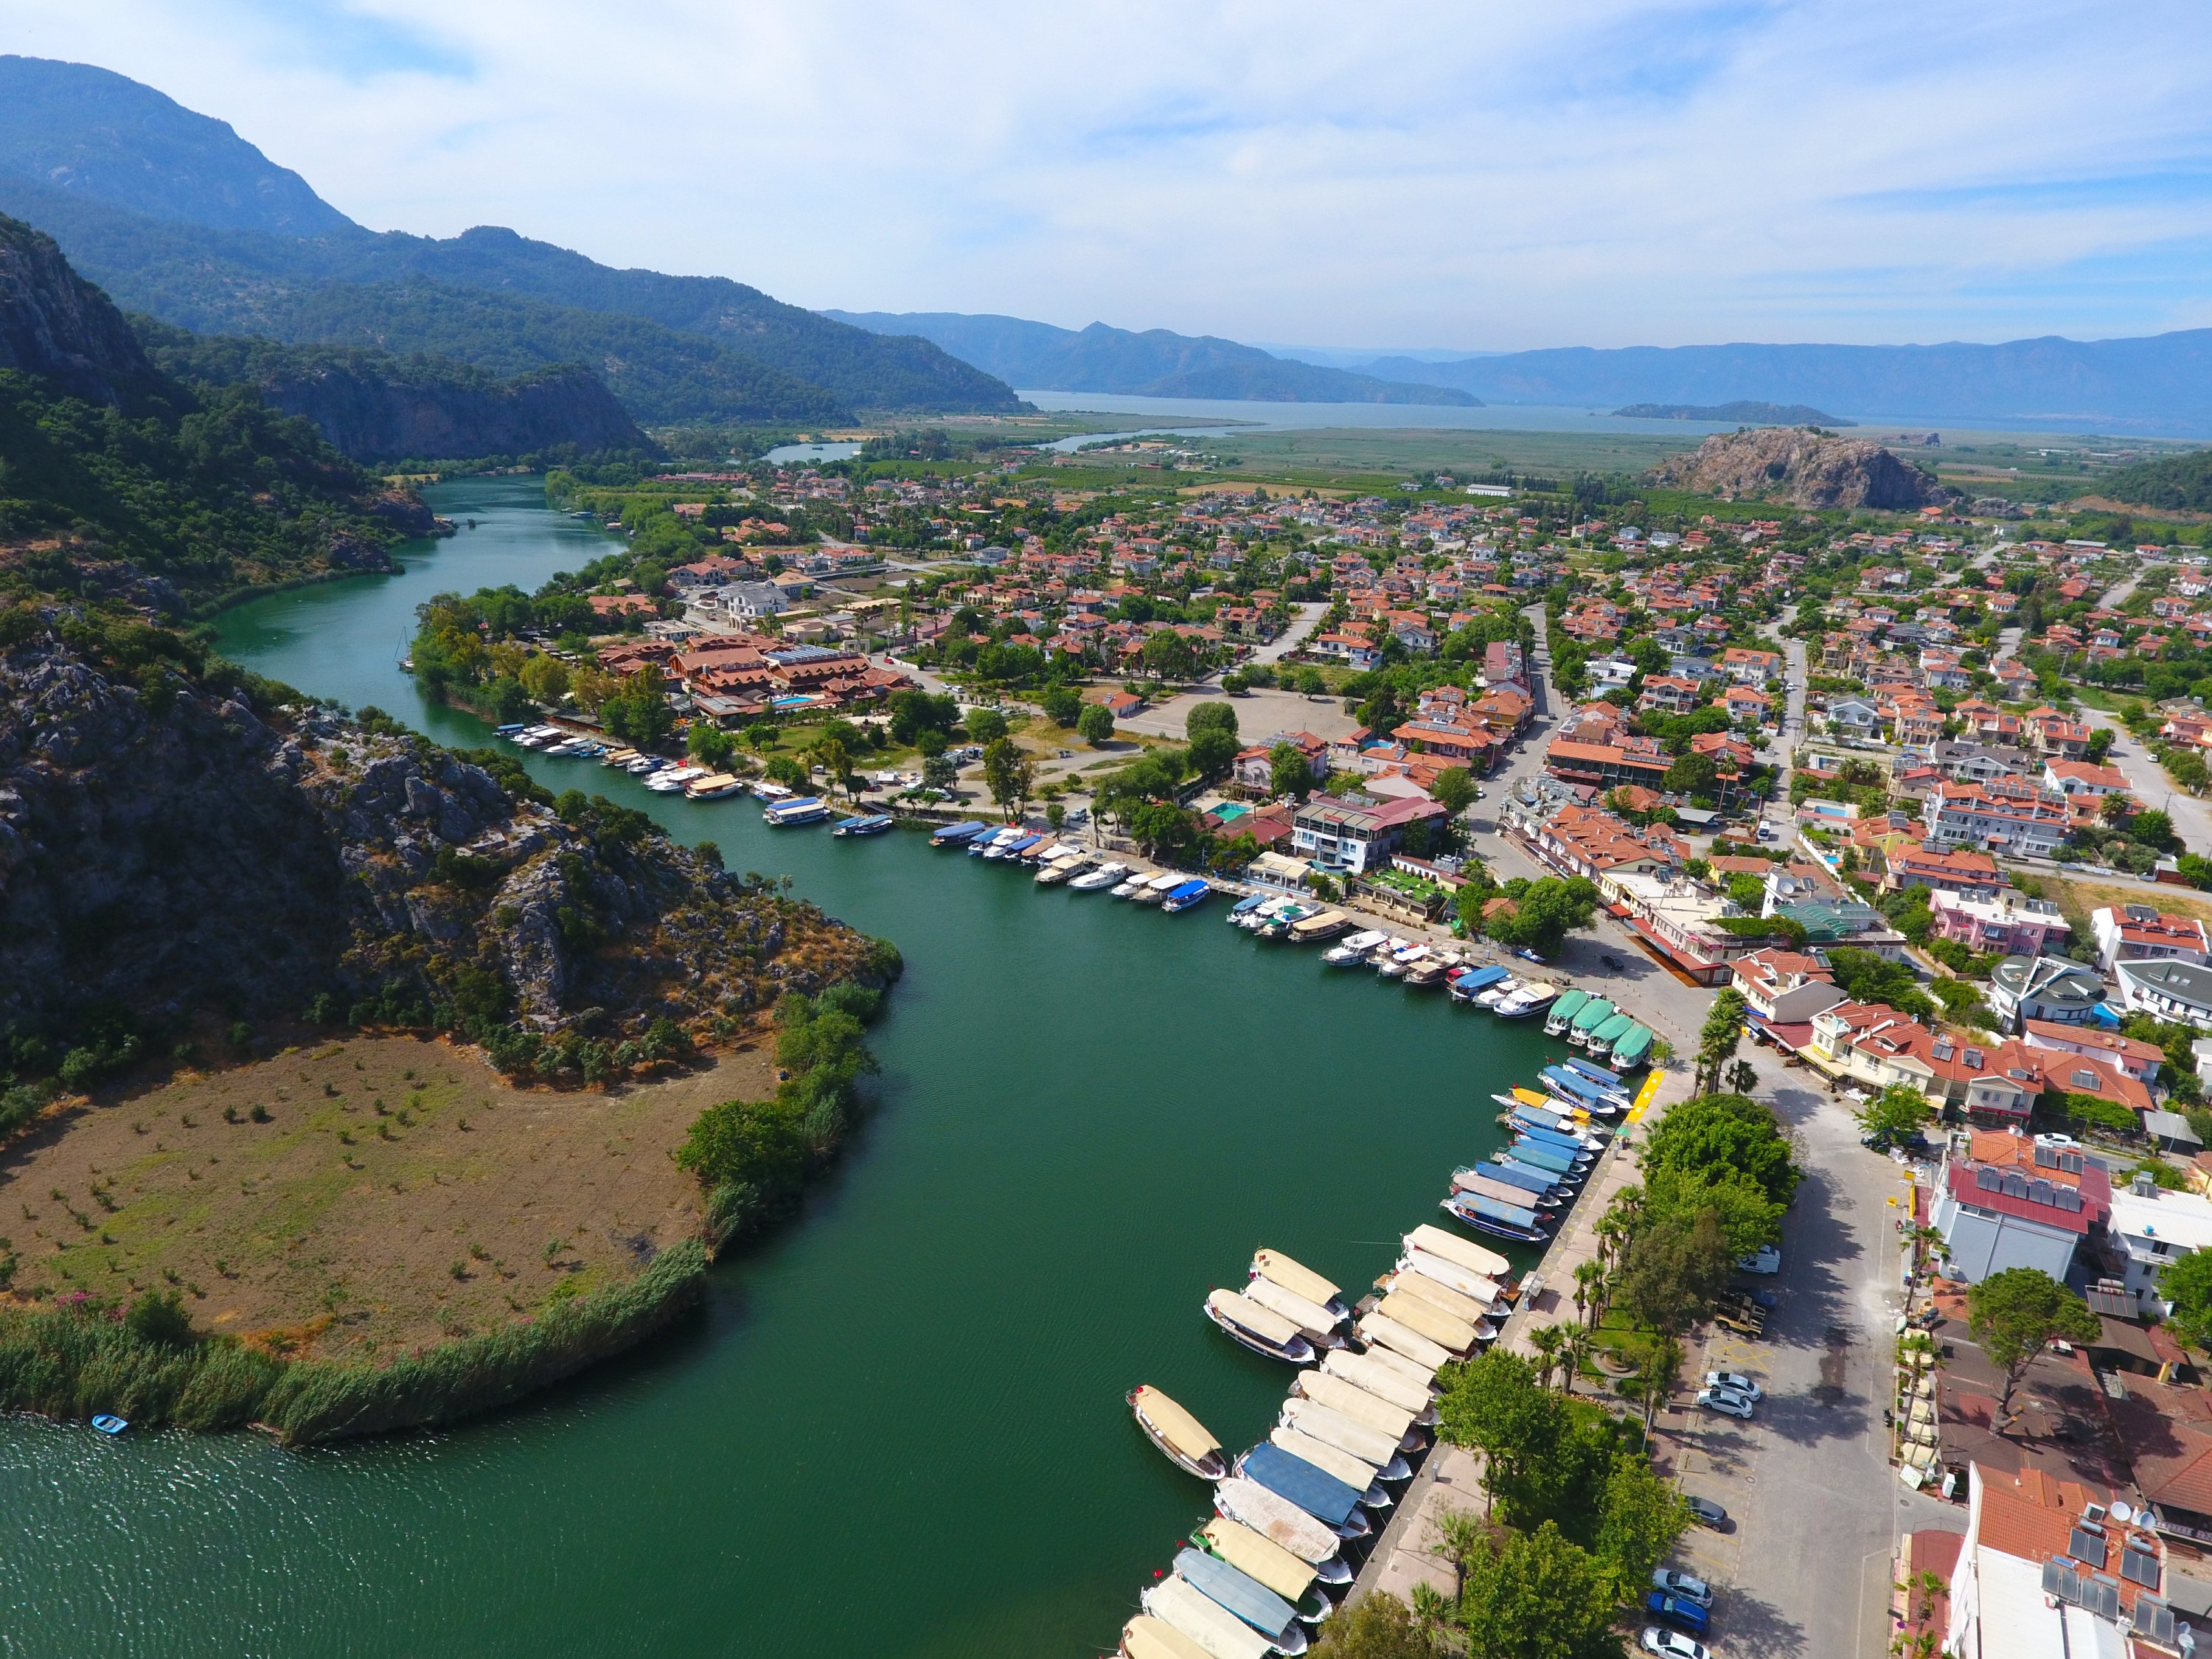 An aerial view showsboats floating on the waters of Dalyan river and the city of Dalyan, with forested mountainous areas in the background, Muğla, southwestern Turkey, May 19, 2021. (AA Photo)